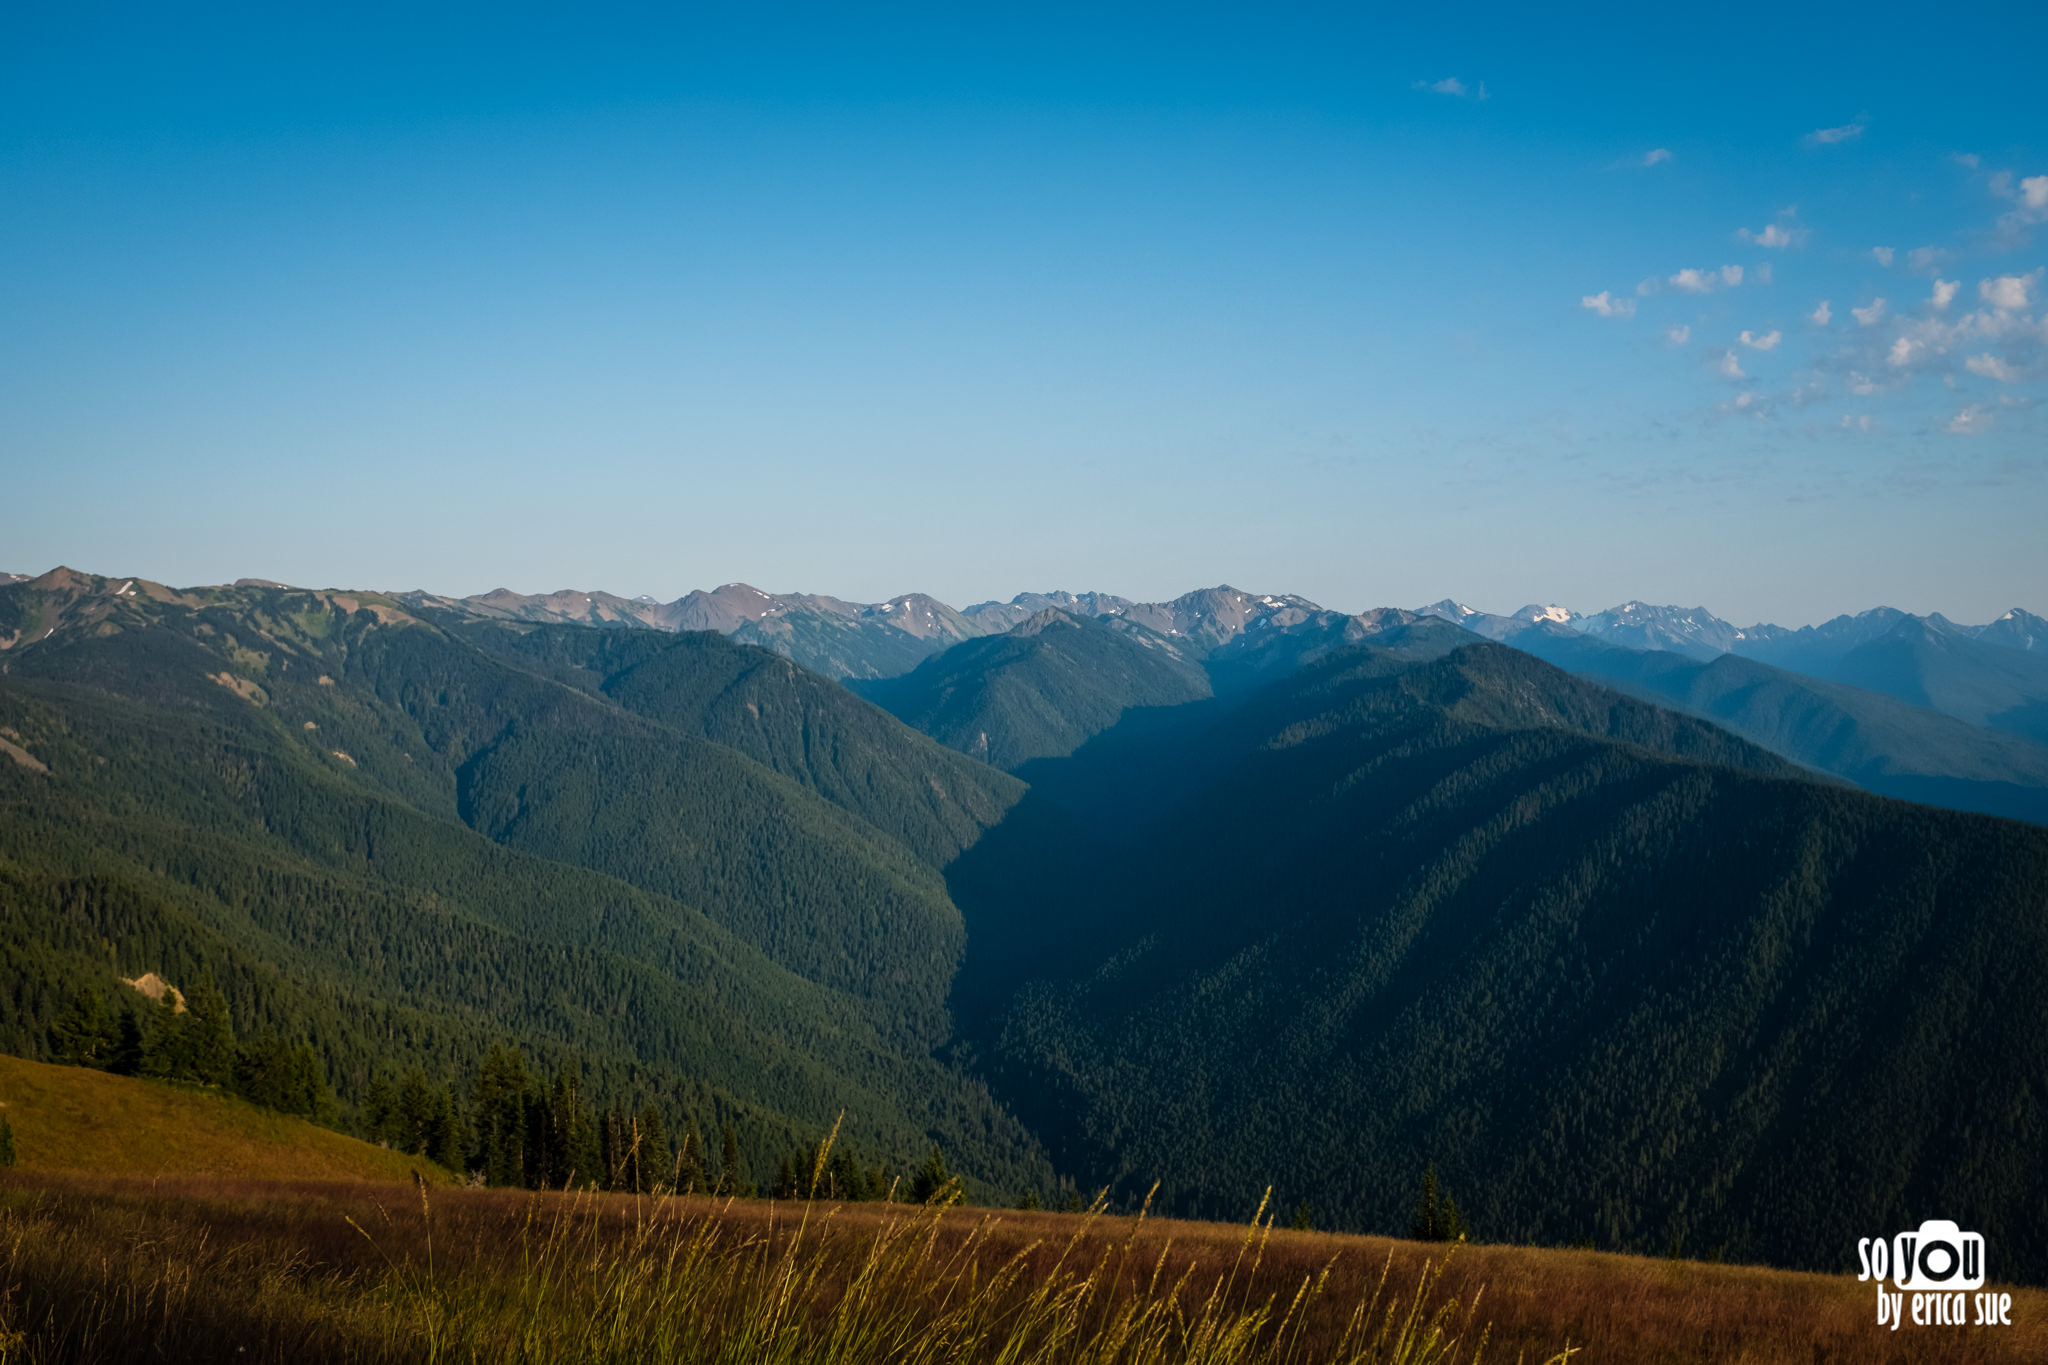 so-you-by-erica-sue-travels-olympic-national-park-road-trip-itinerary-3106.JPG